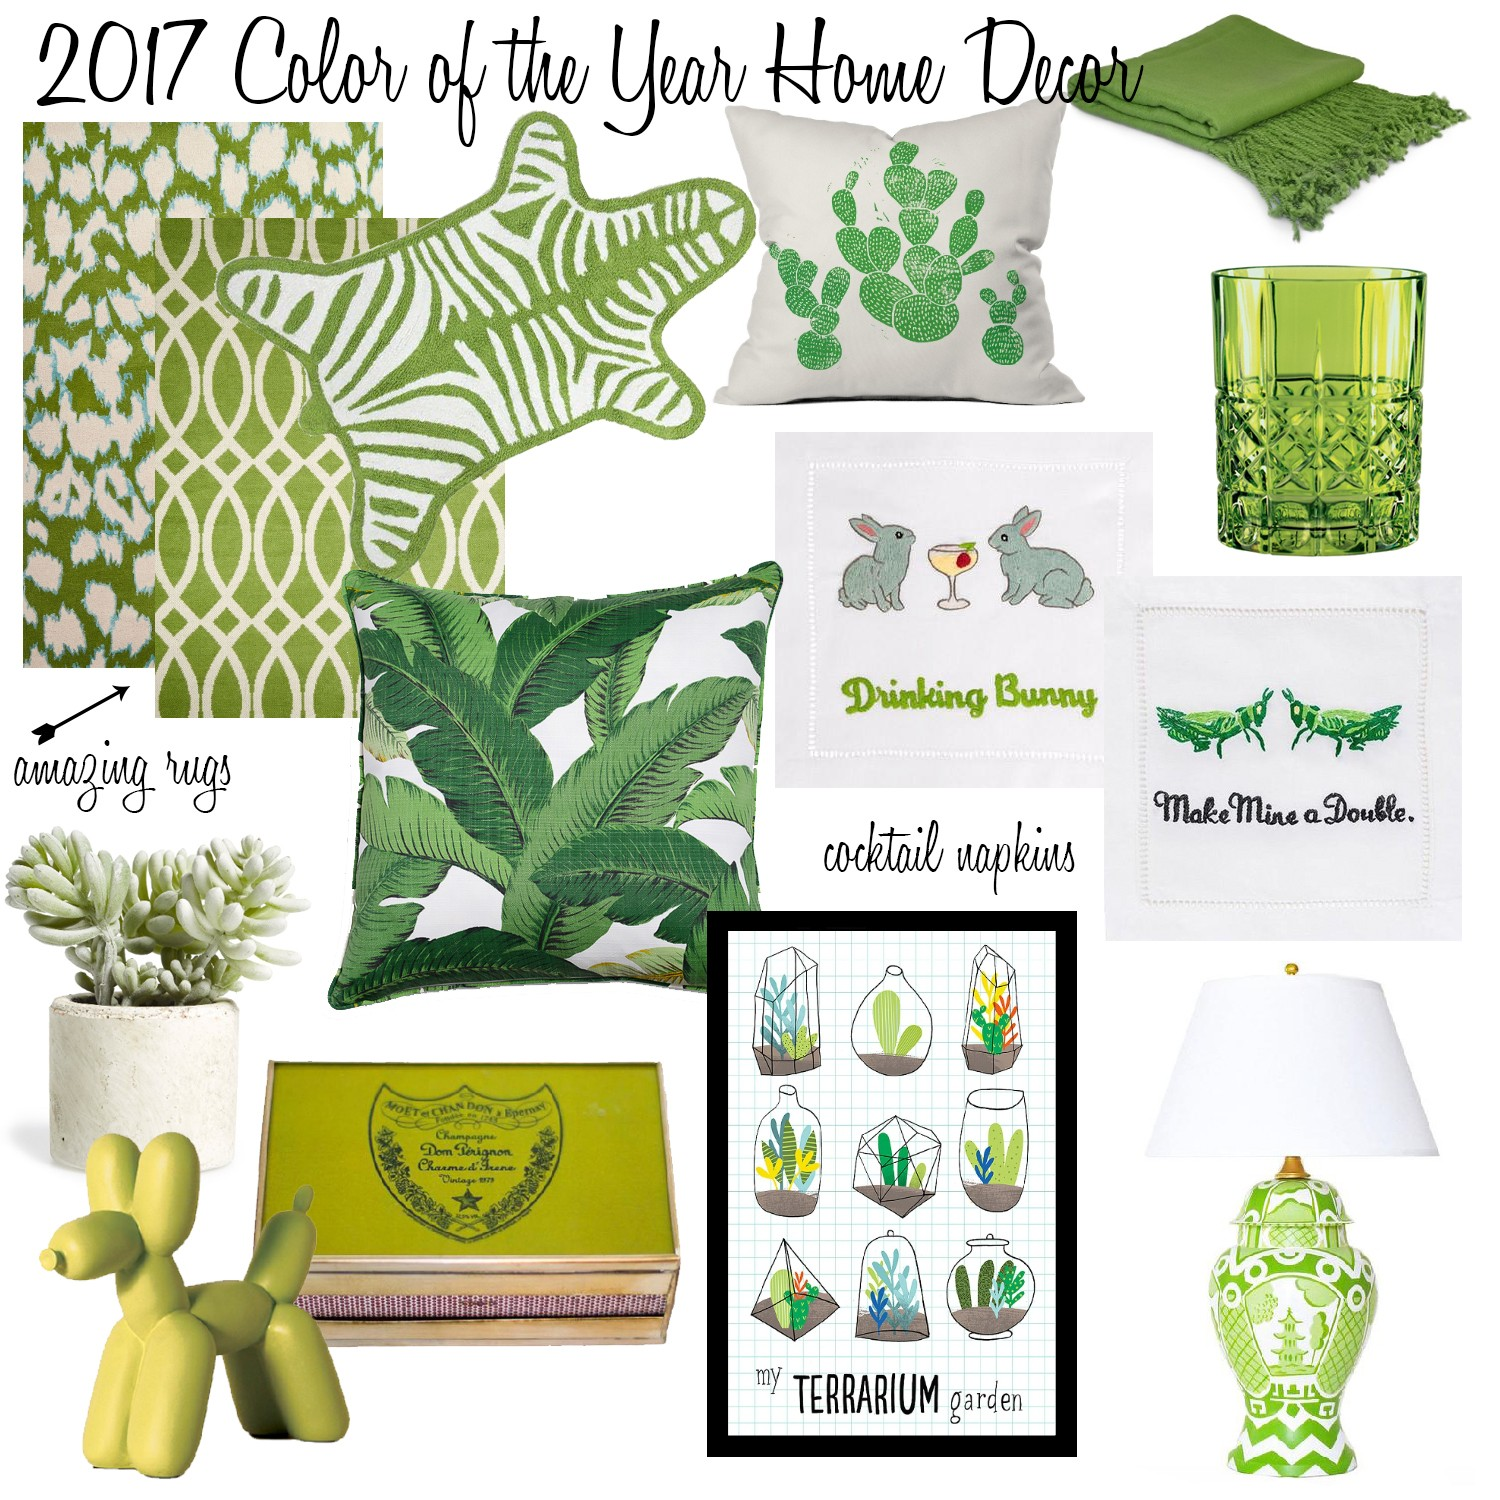 2017 color of the year home decor - meghan jones